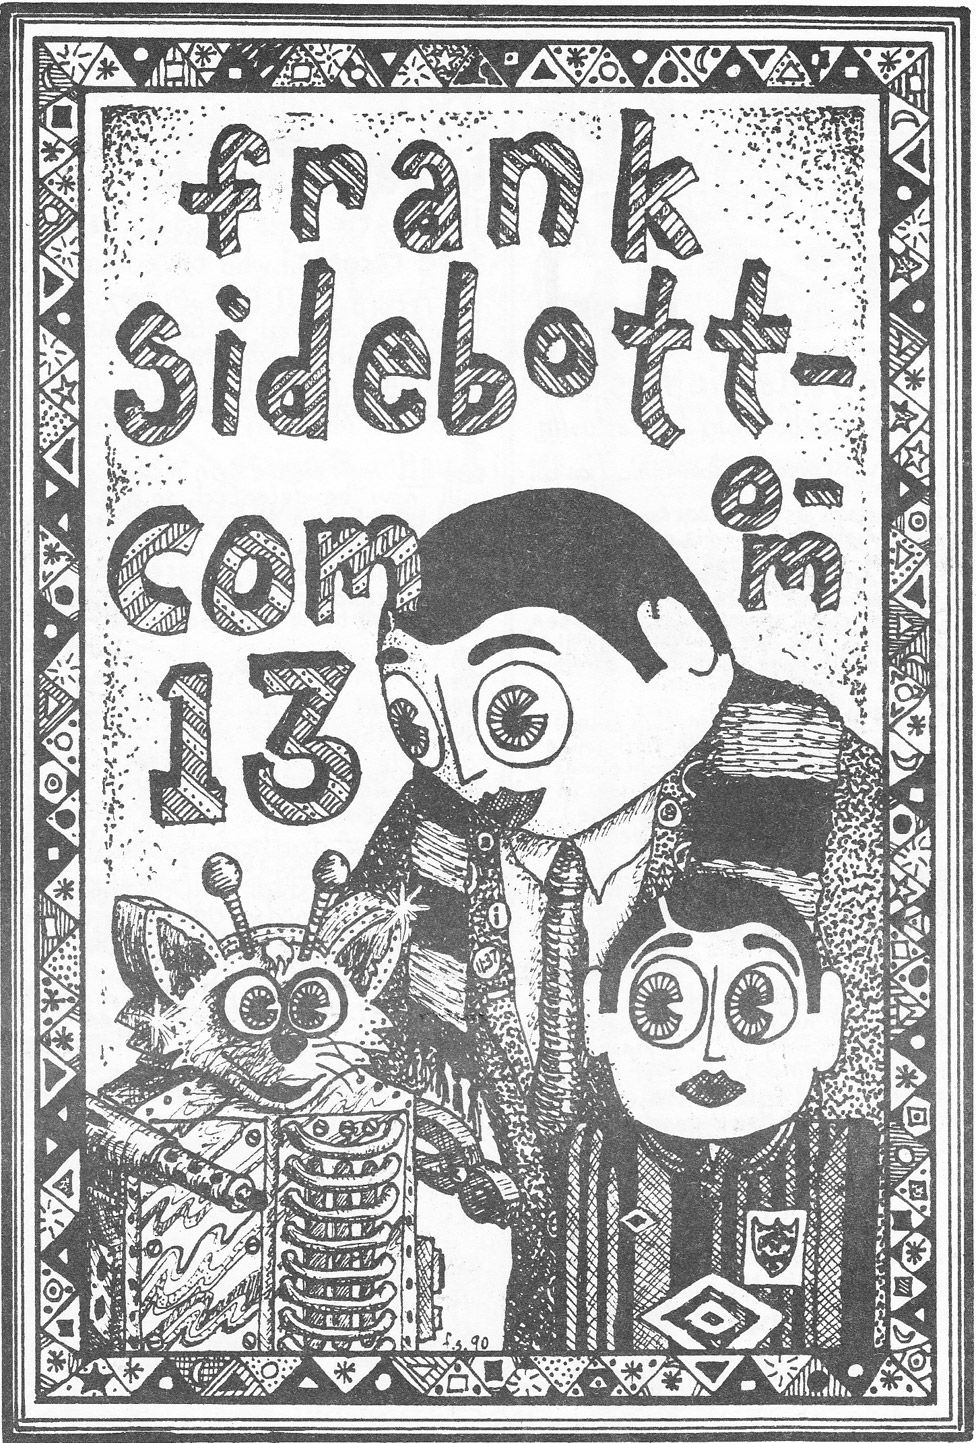 Frank Sidebottom code